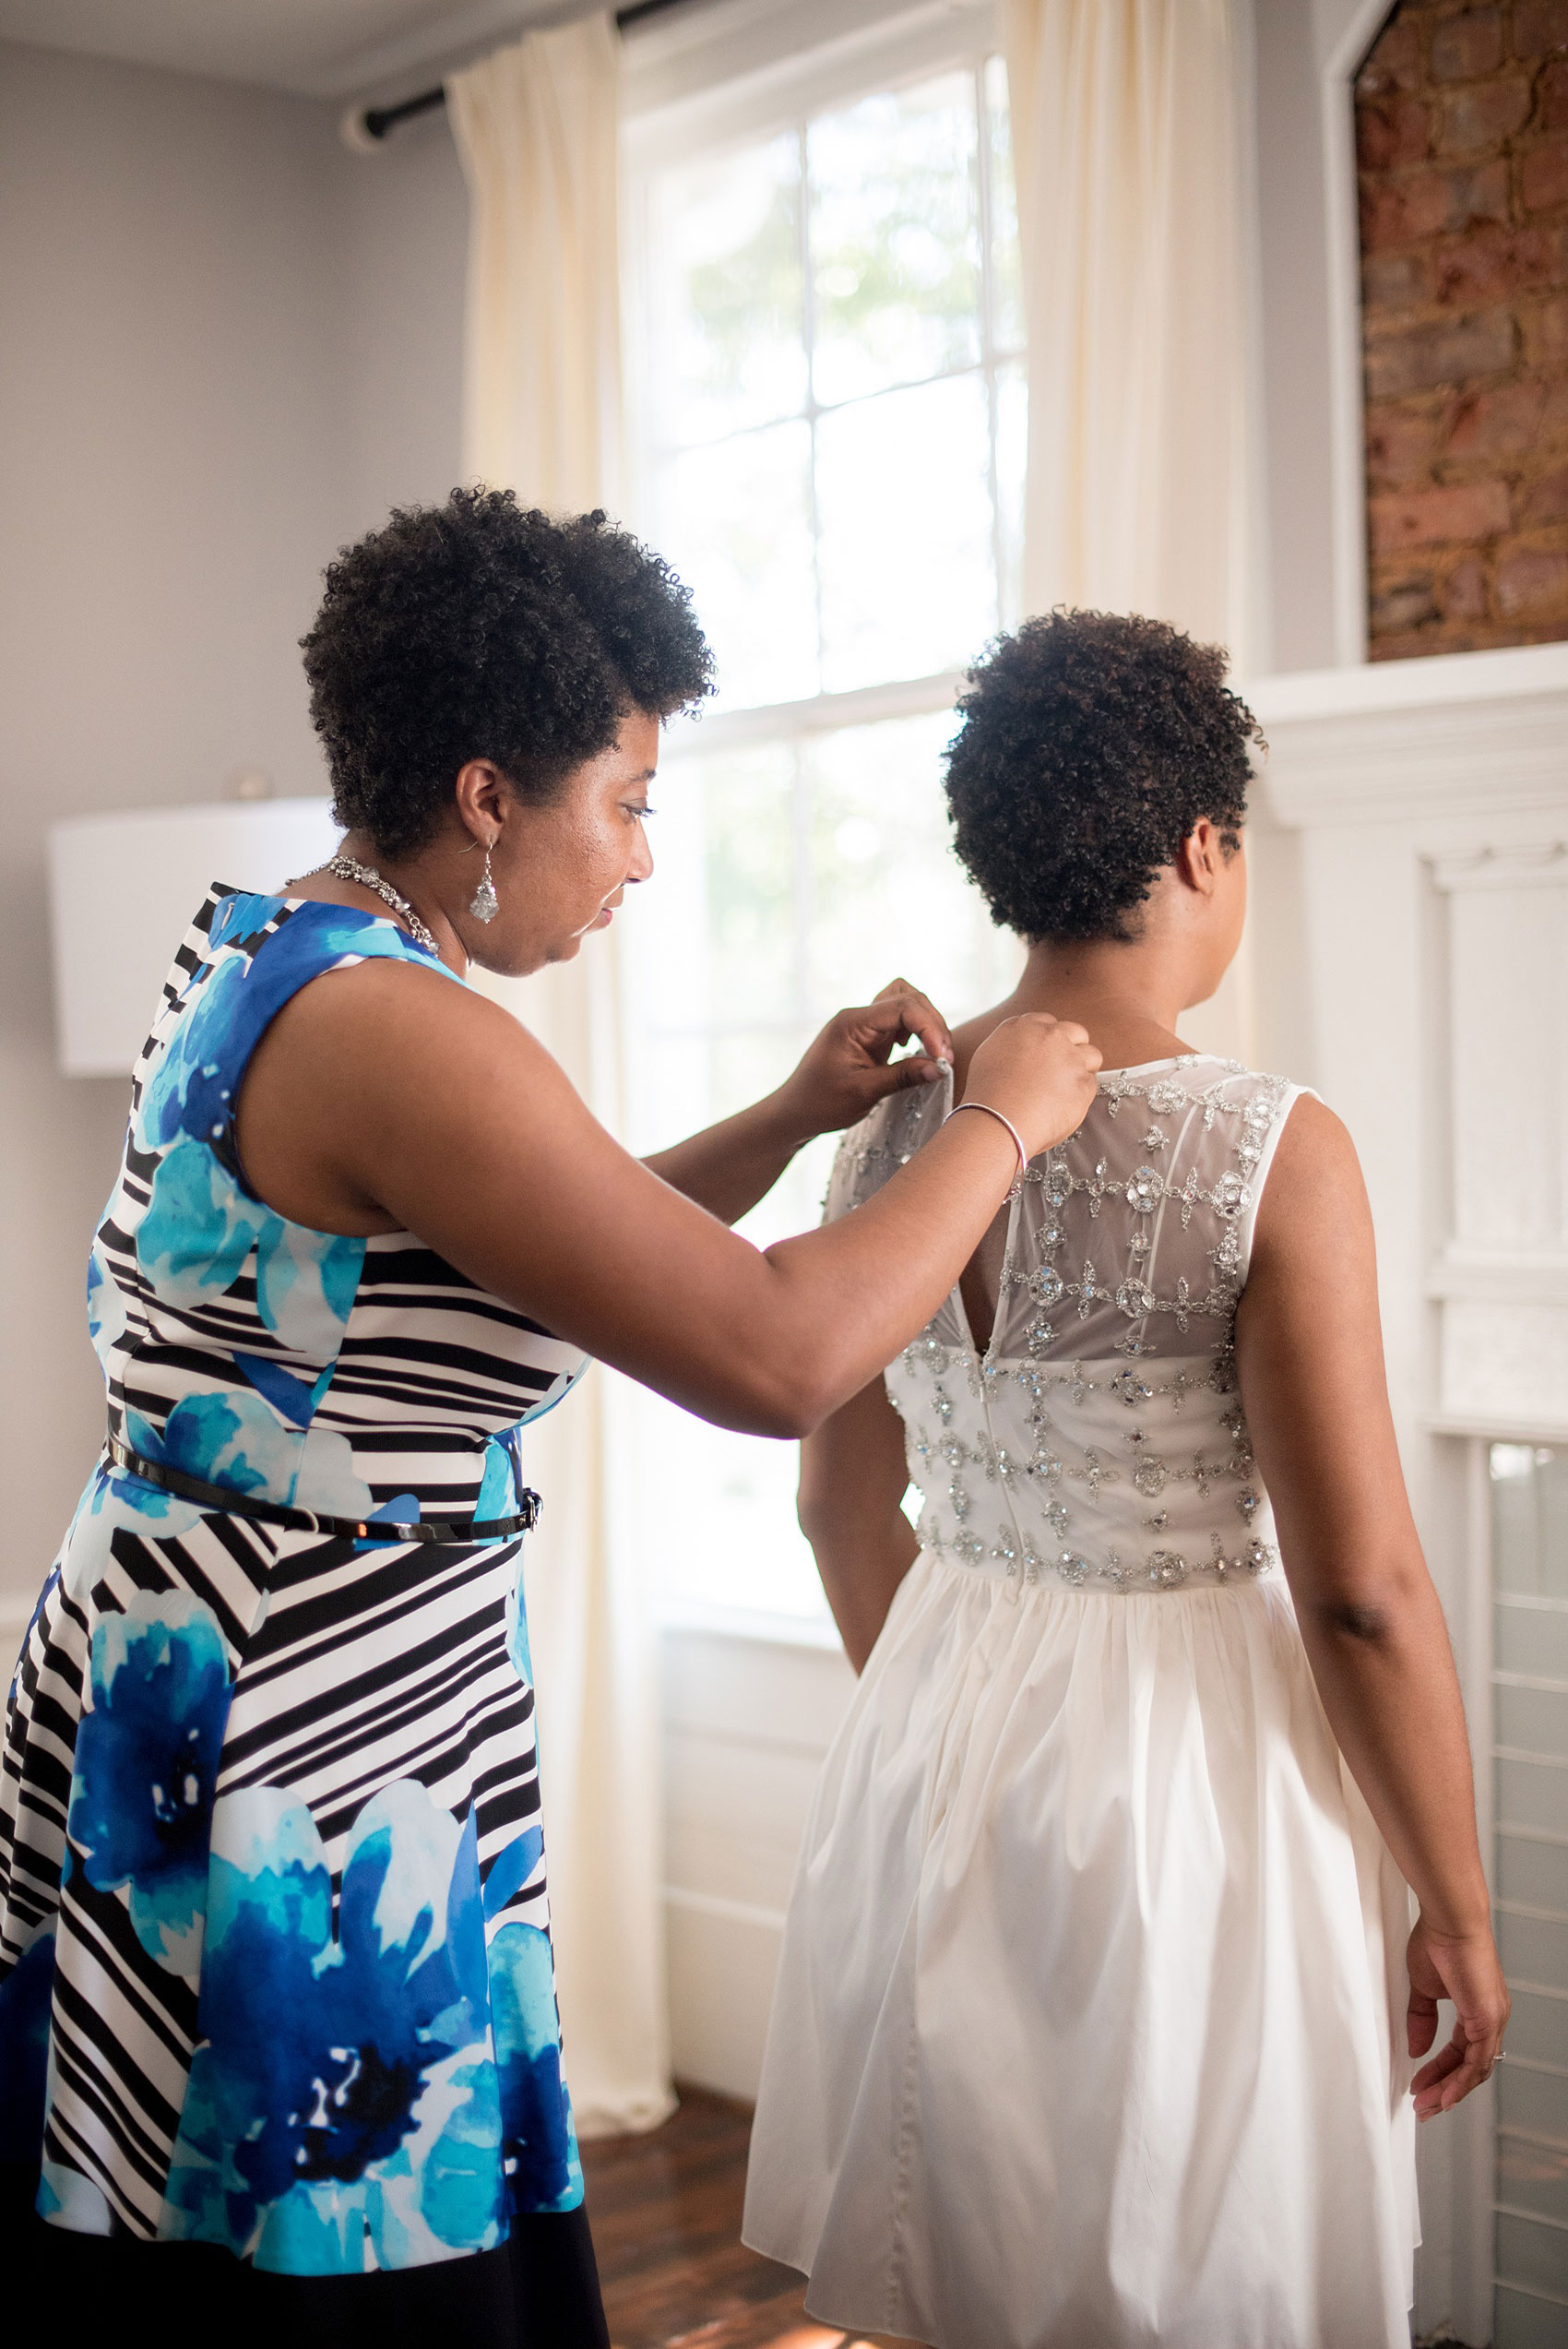 Mikkel Paige Photography pictures of a wedding at Leslie-Alford Mim's House in North Carolina for a Mad Dash Weddings event. Photo of the bride's sister helping her get ready in the bridal suite.